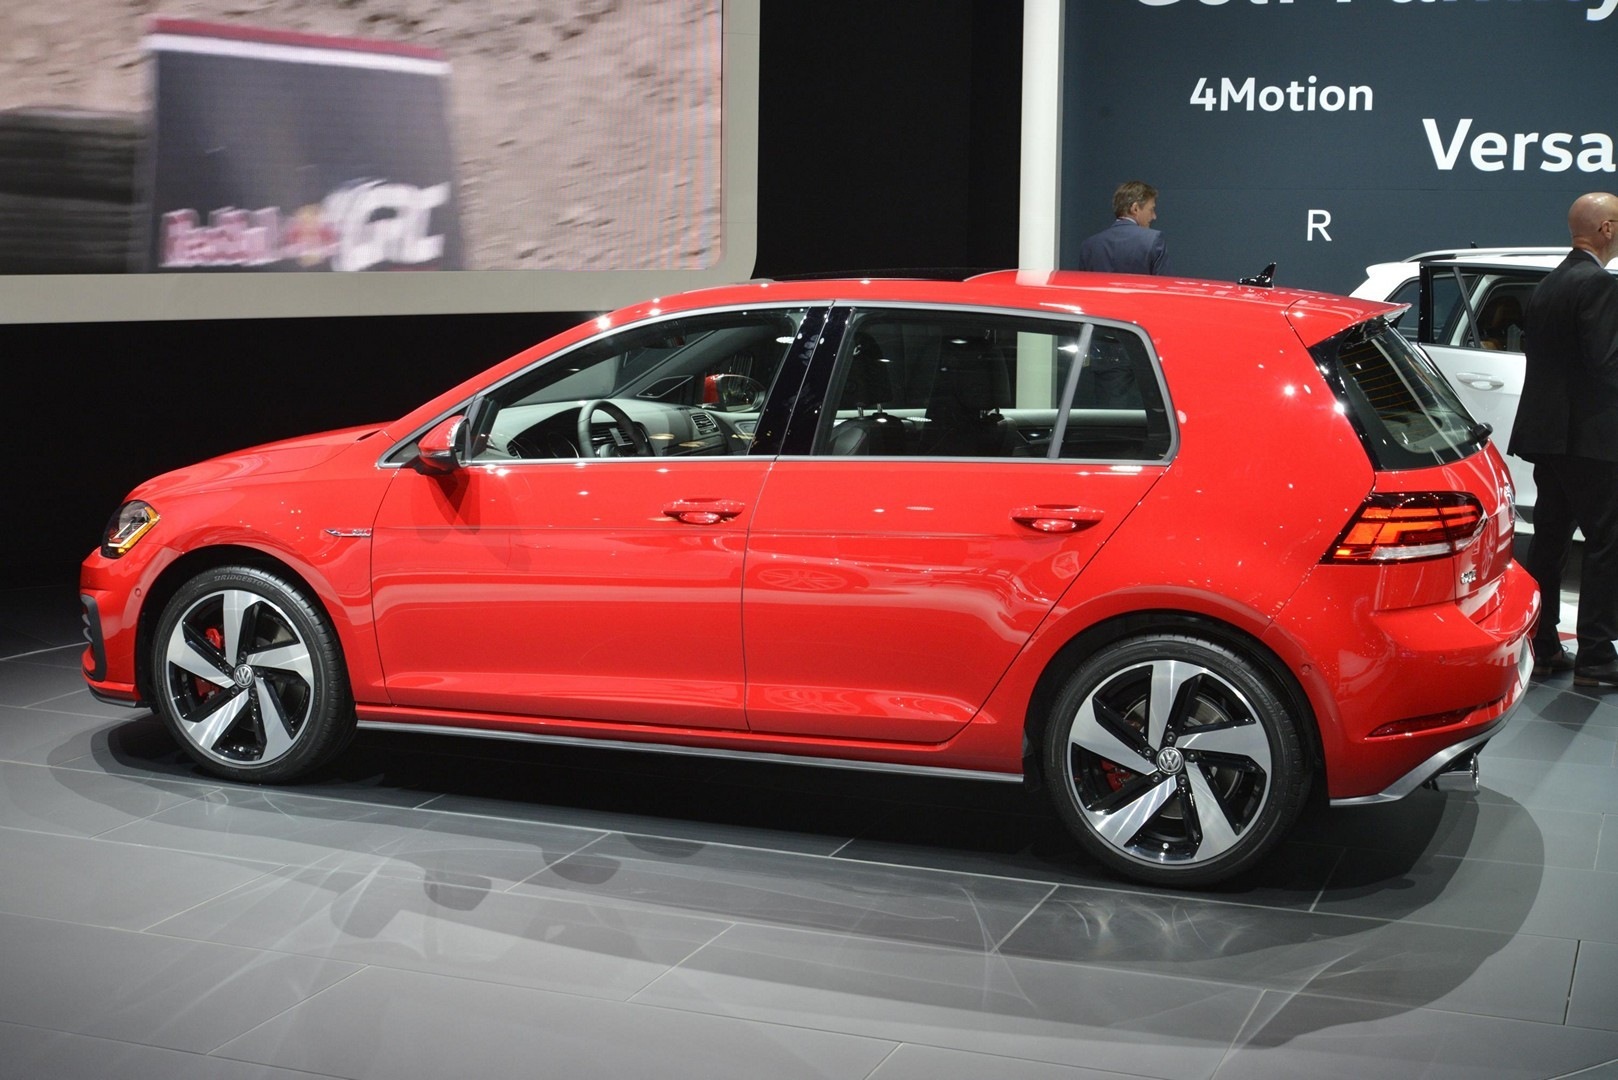 The Special Treatment This Refreshment Received Isn T Entirely Deserved And It Might Make Mk 7 Golf Owners A Bit Frustrated Thinking They Are Missing